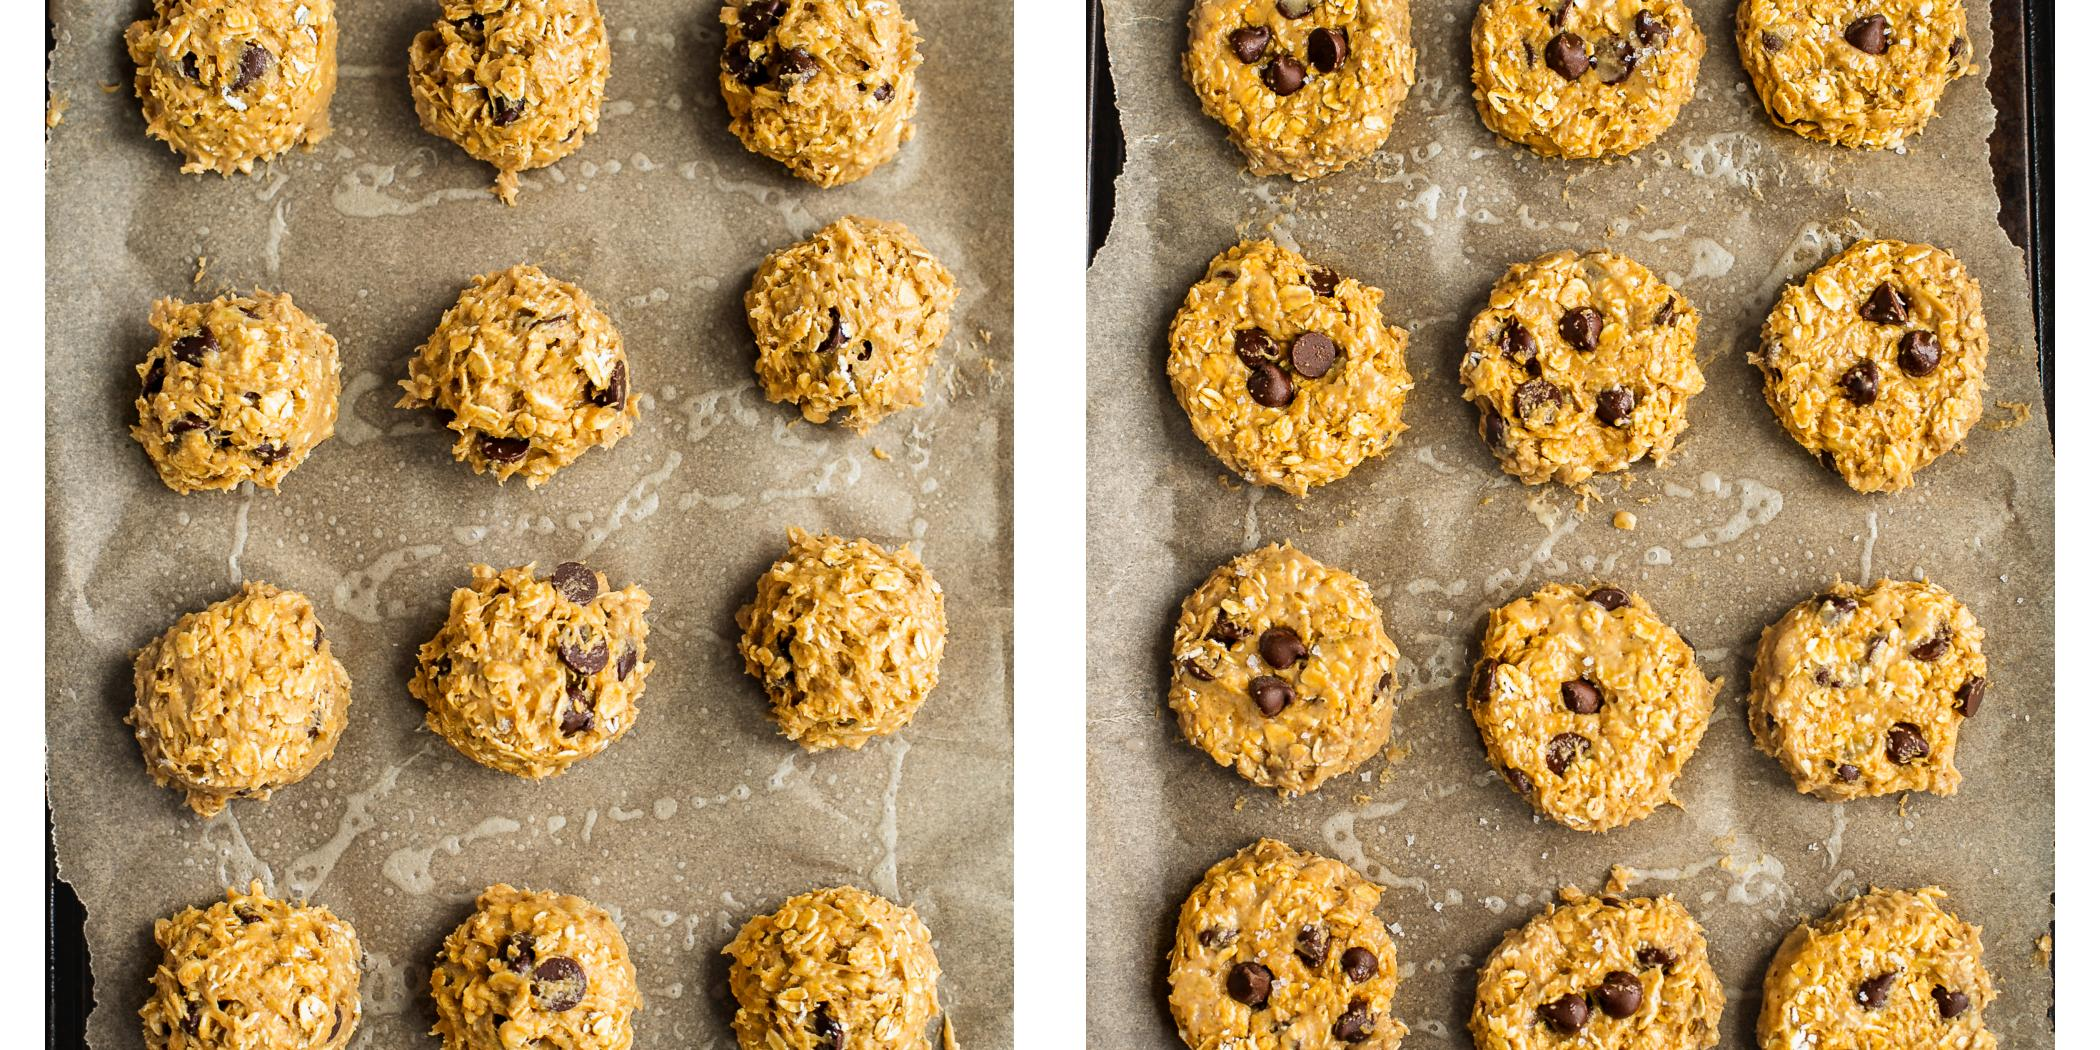 Instruction on how to make peanut butter oatmeal cookies.